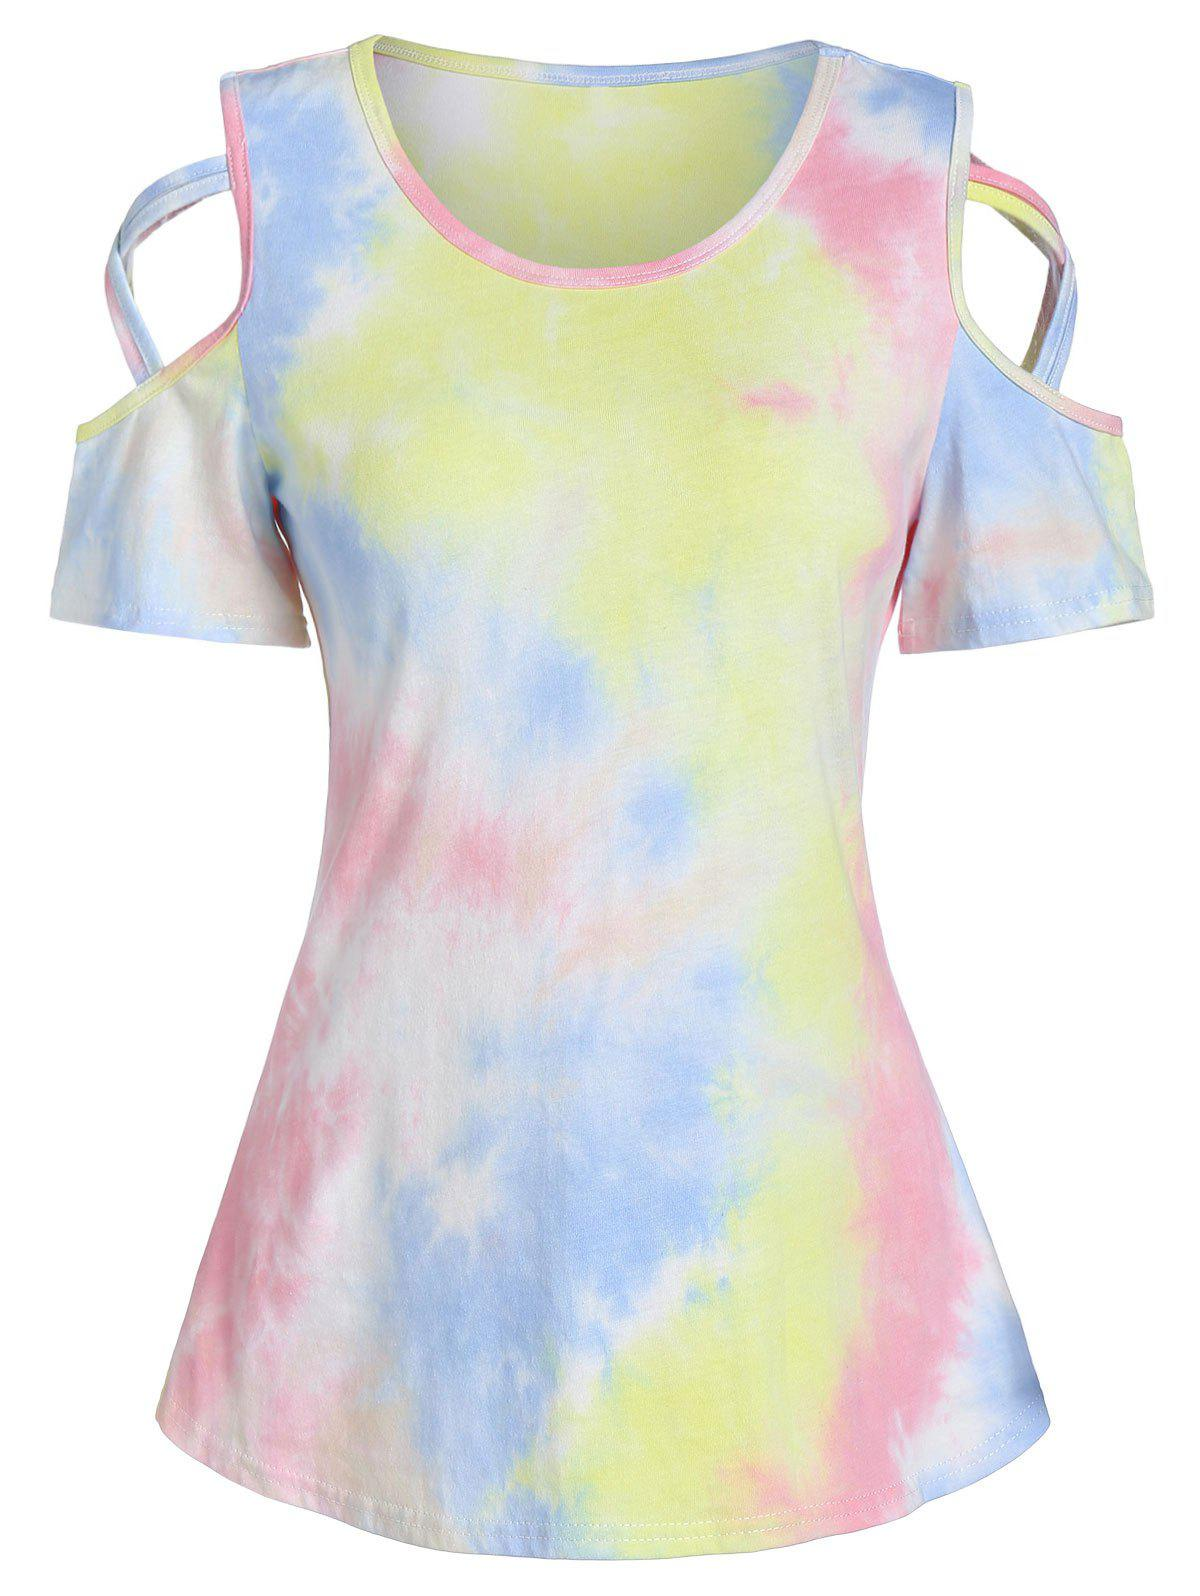 Shop Cold Shoulder Tie Dye Print Criss-cross T-shirt